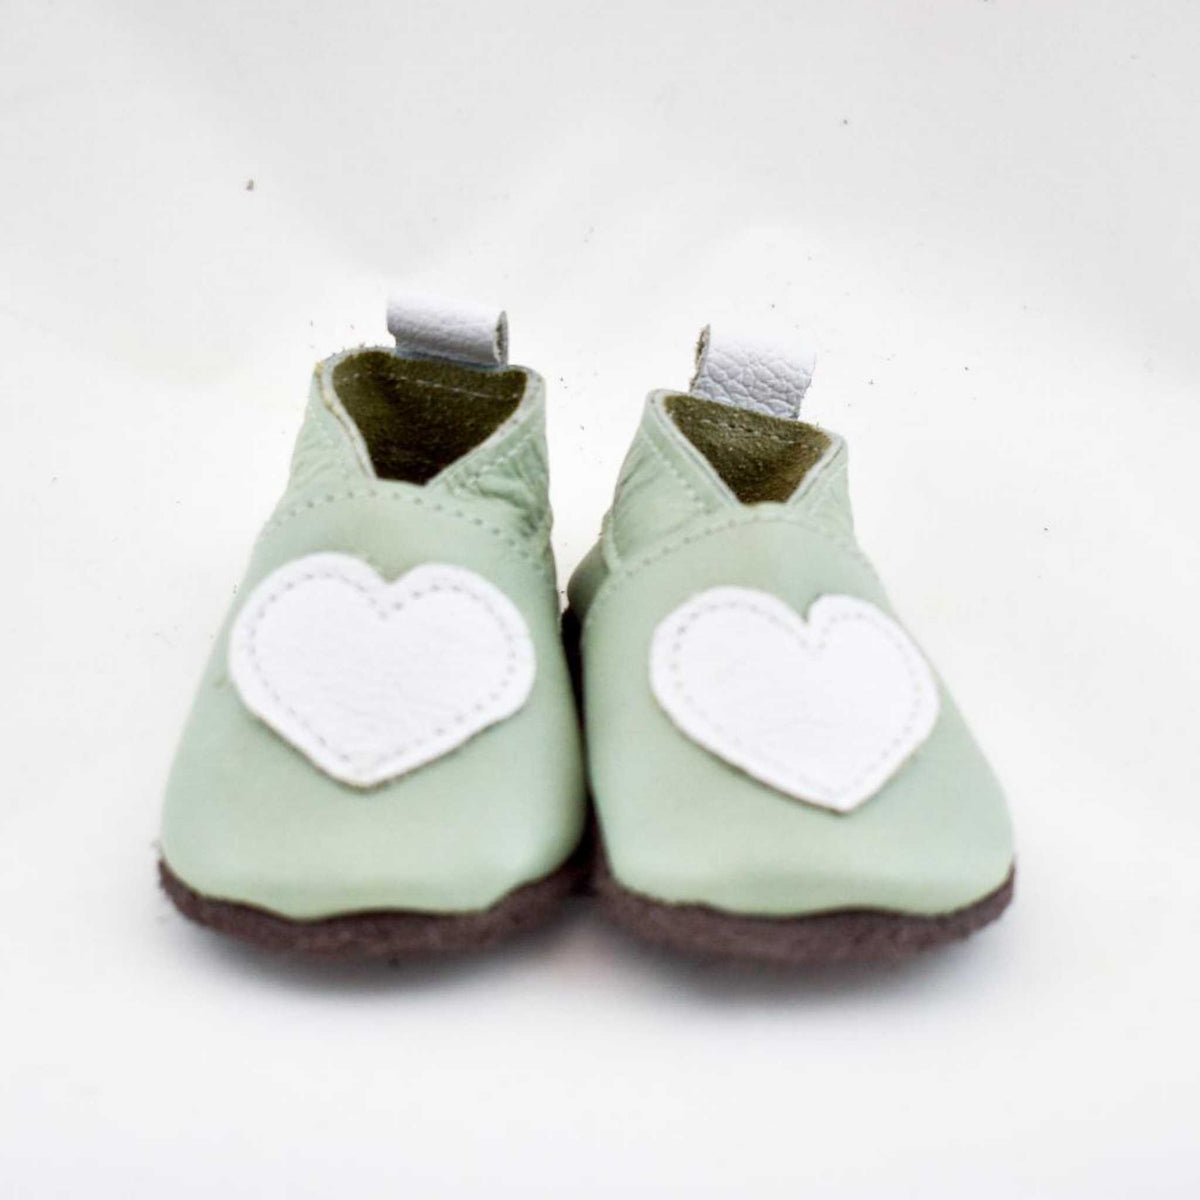 Soft soled leather shoes - Medium (6 - 12 months).